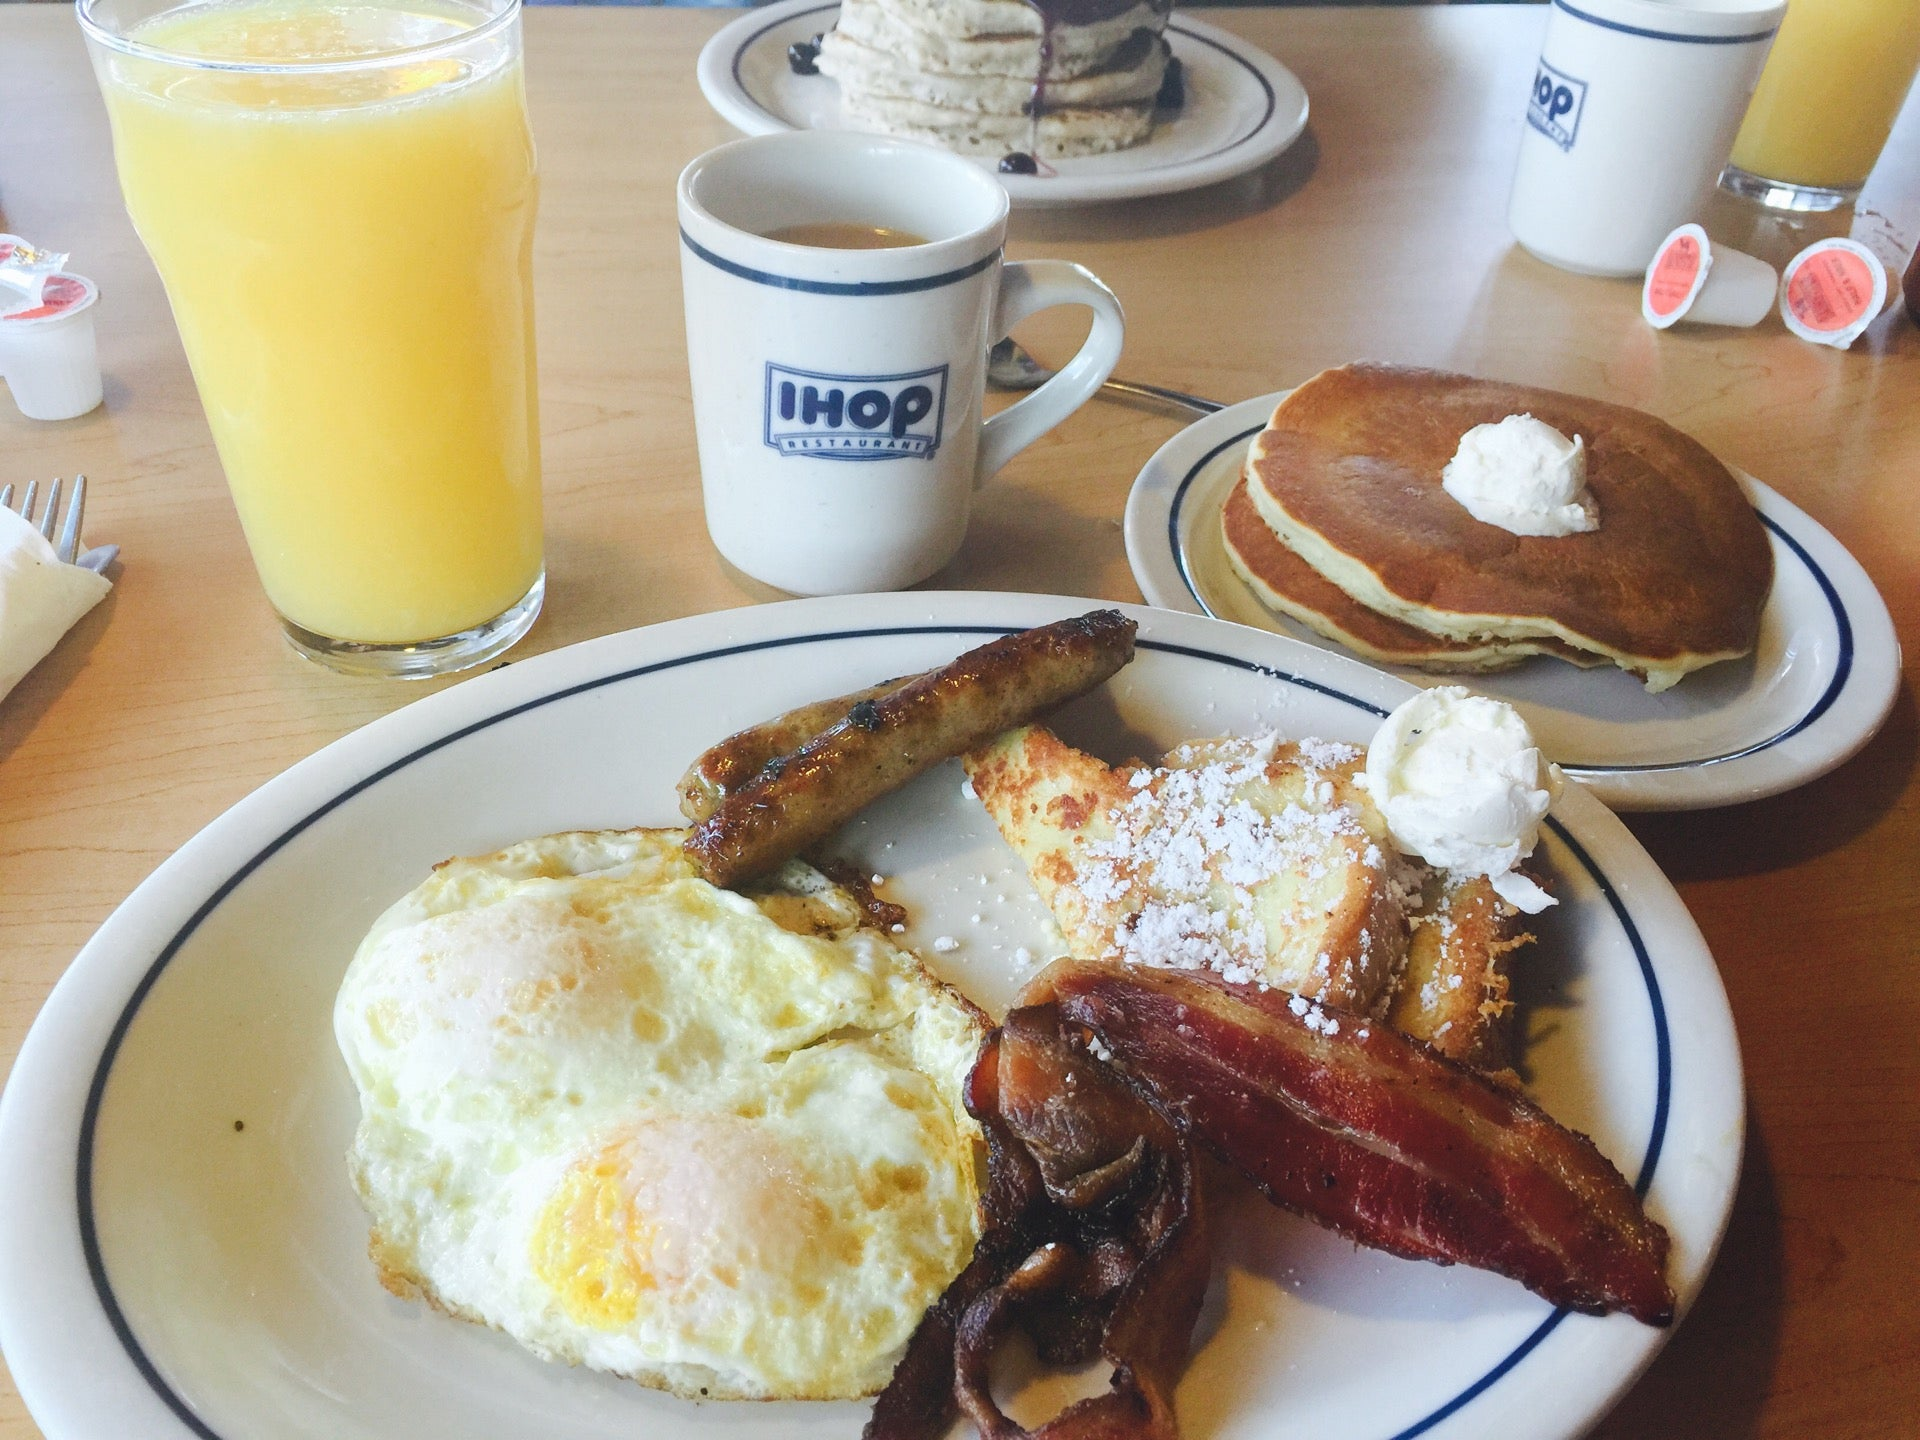 IHOP,free gift from store next door